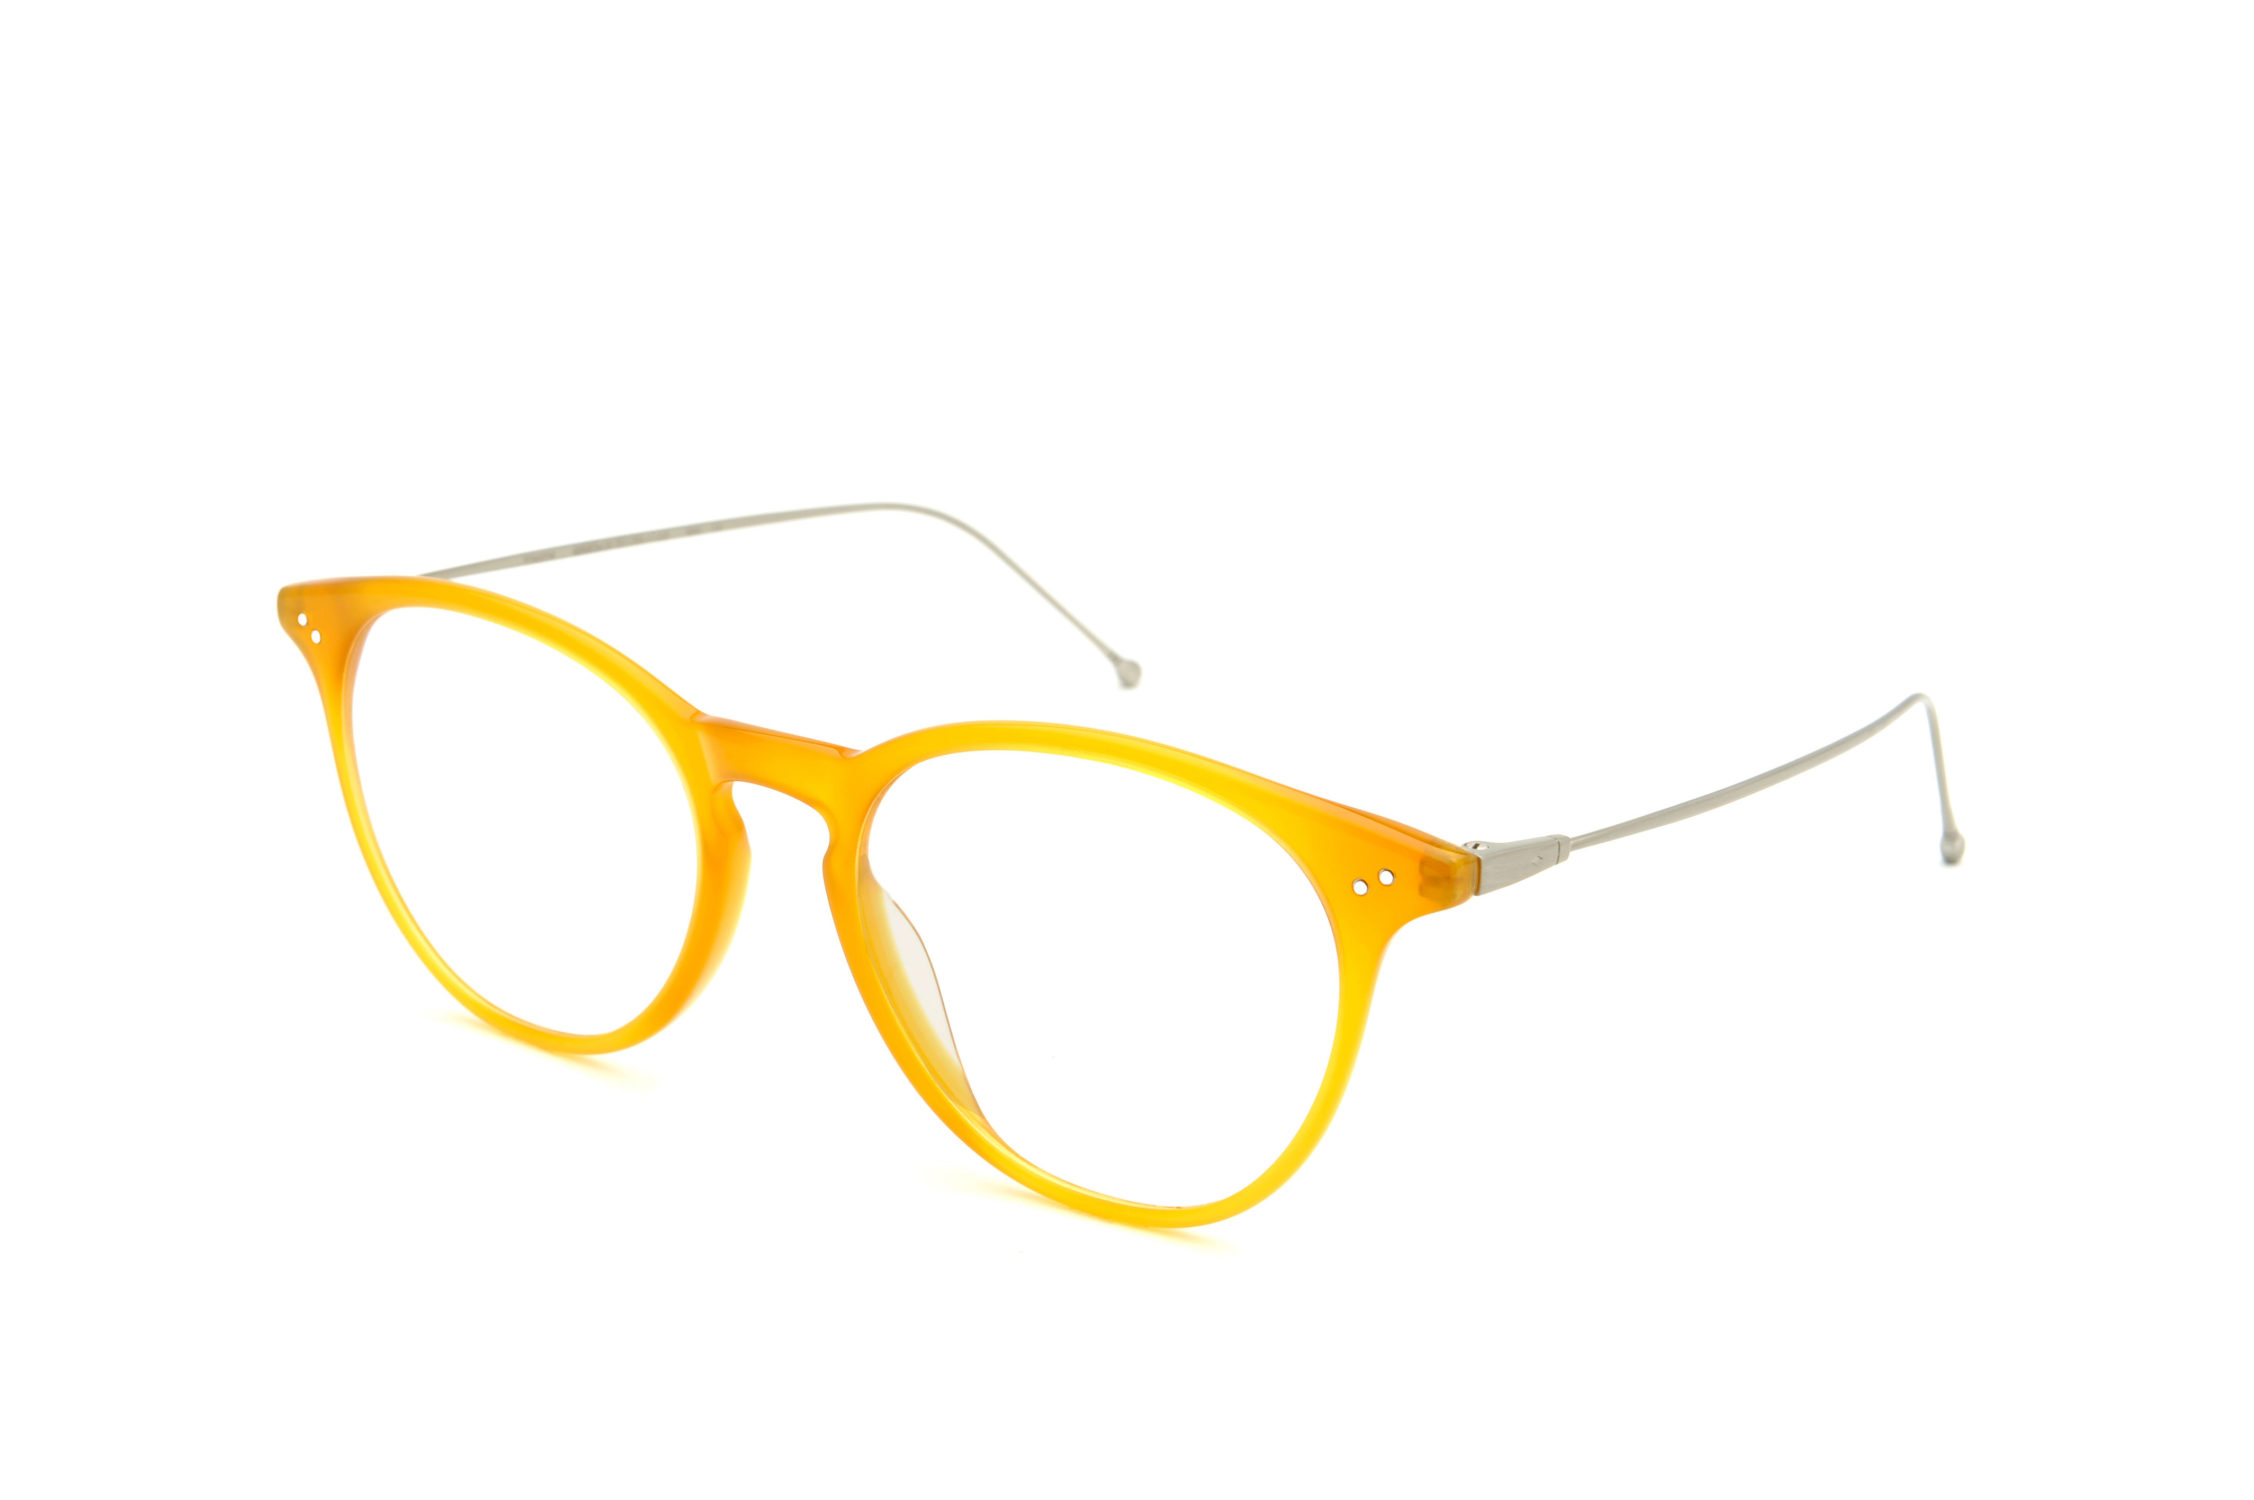 Flow acetate rounded yellow sunglasses by GIGI Studios